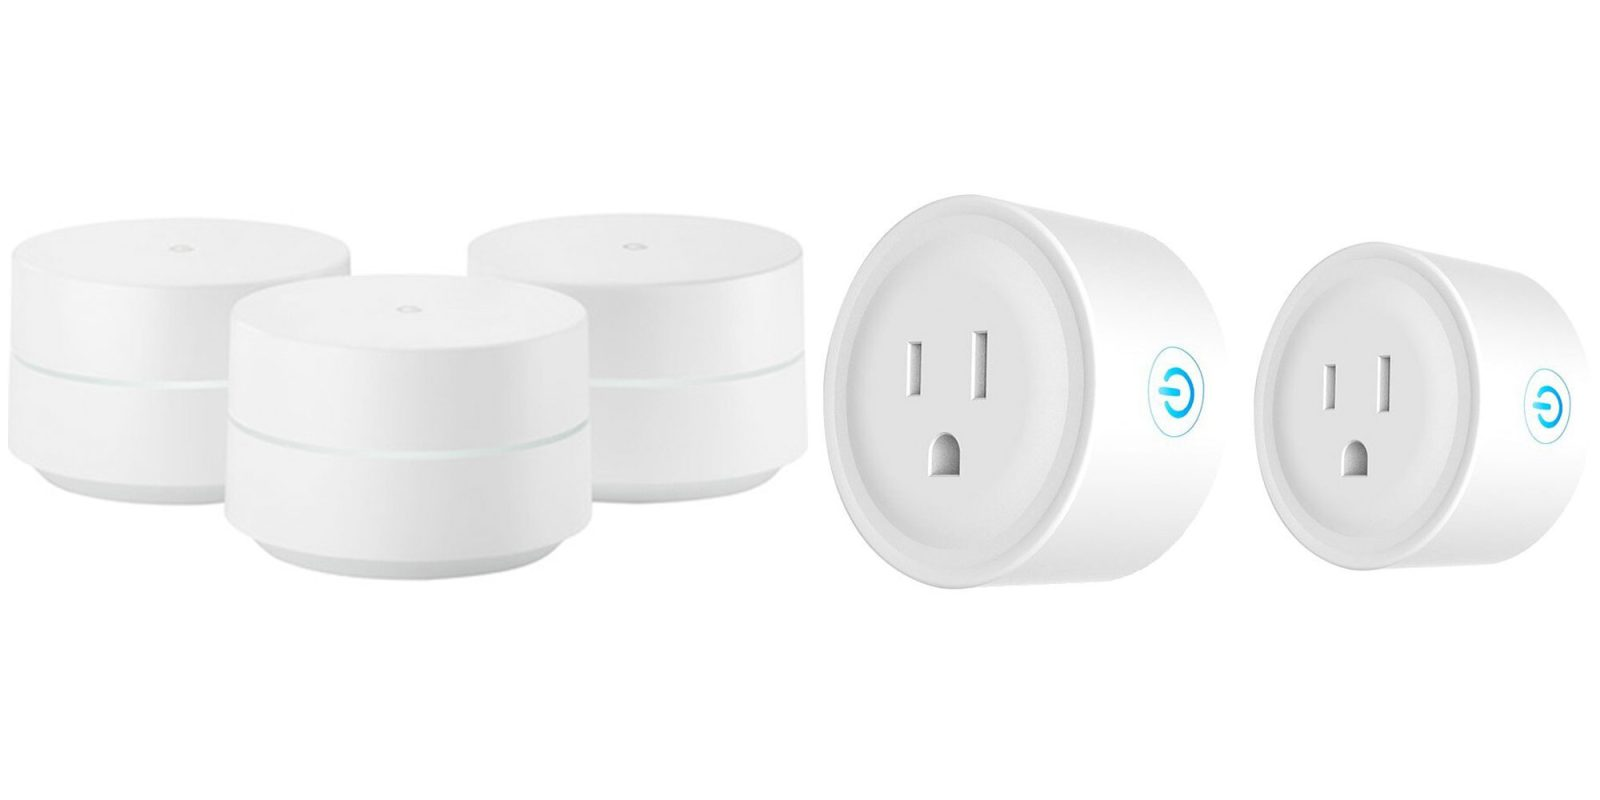 Upgrade your smart home with this Google WiFi + smart plug combo at $199, more